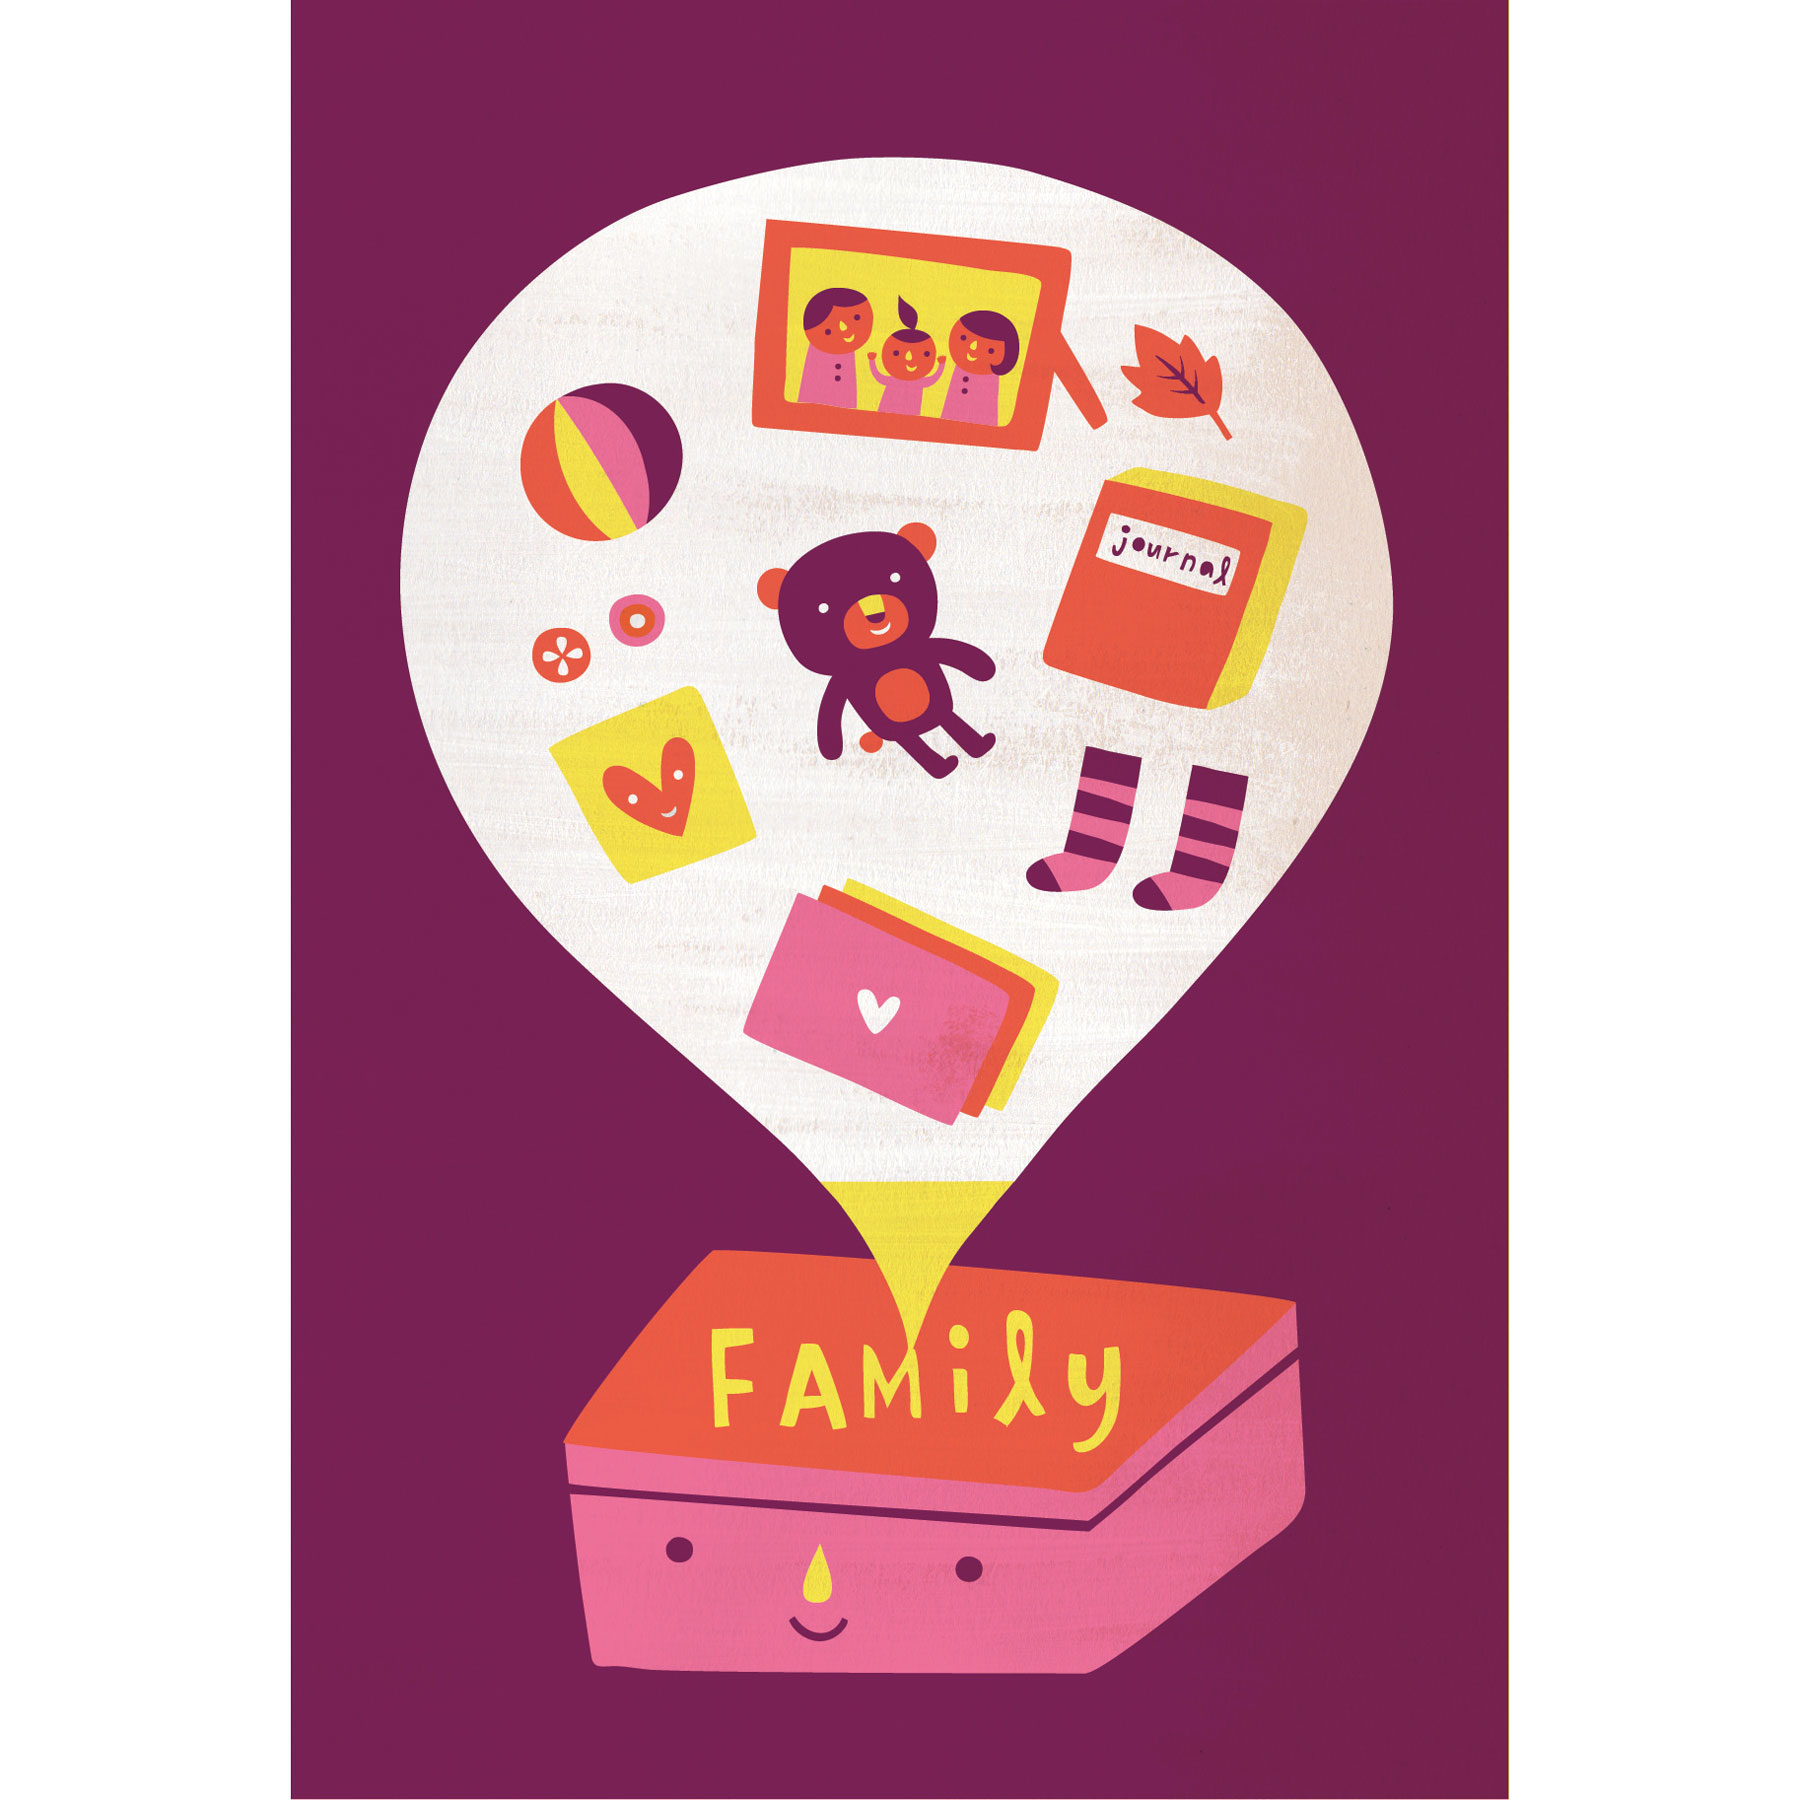 Fun family activities - Time capsule illustration